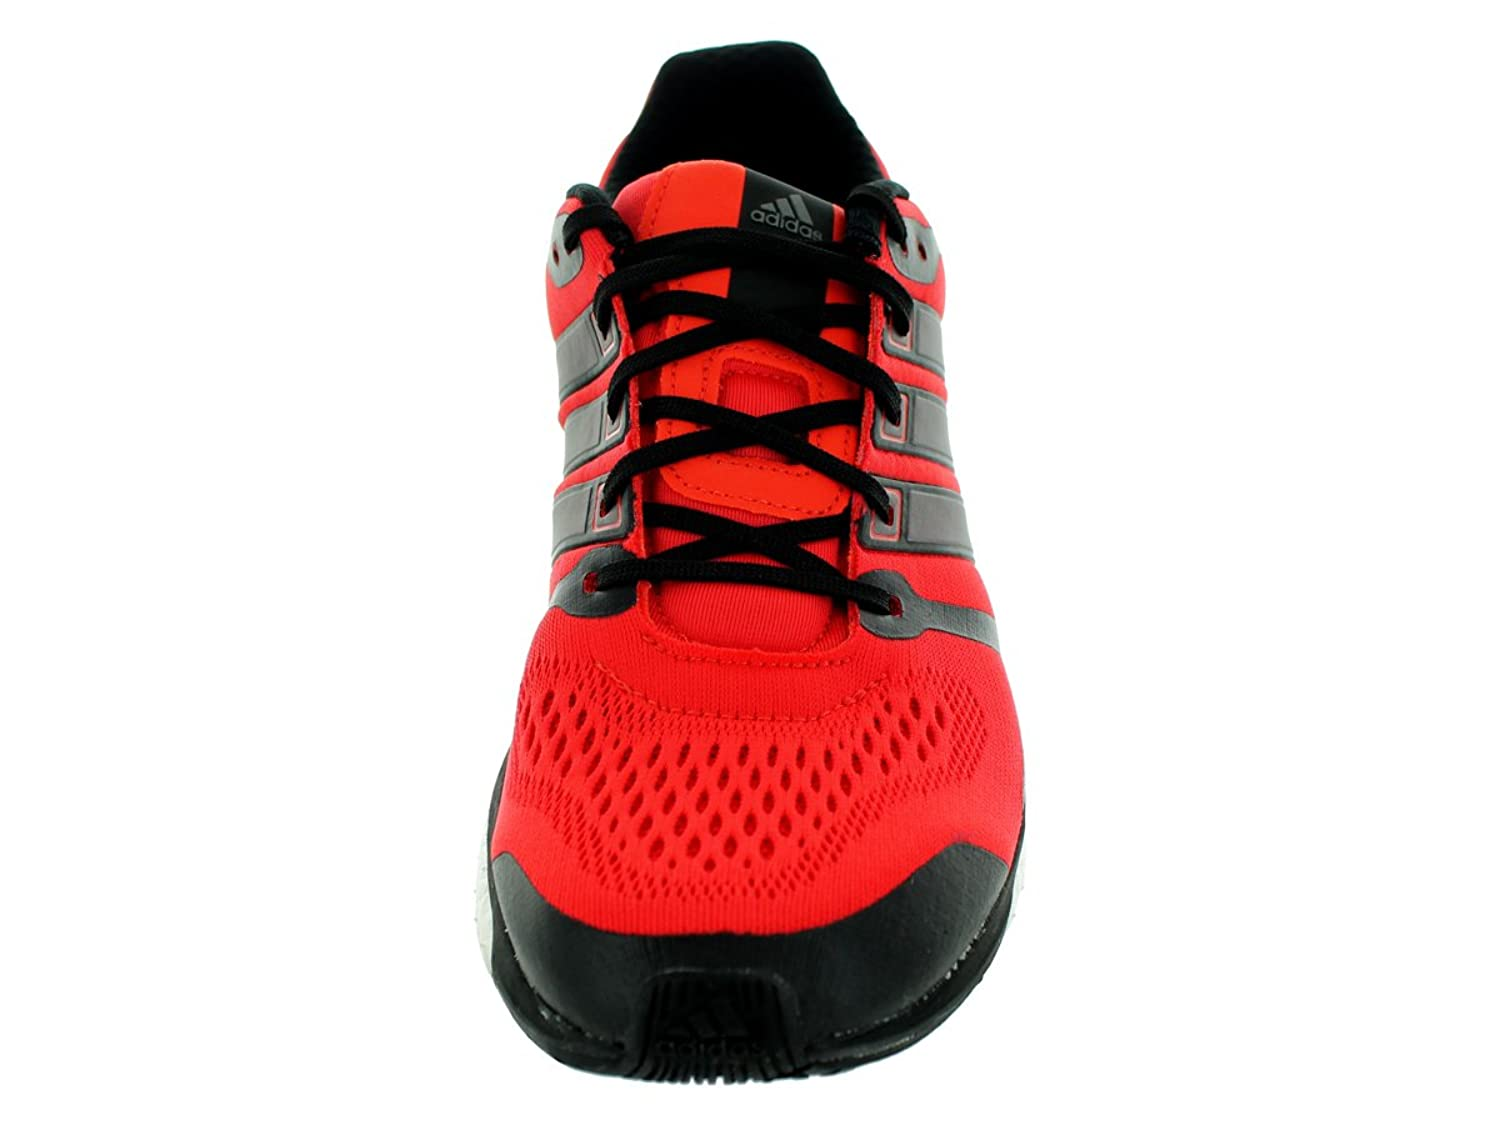 adidas adistar boost men's running shoes